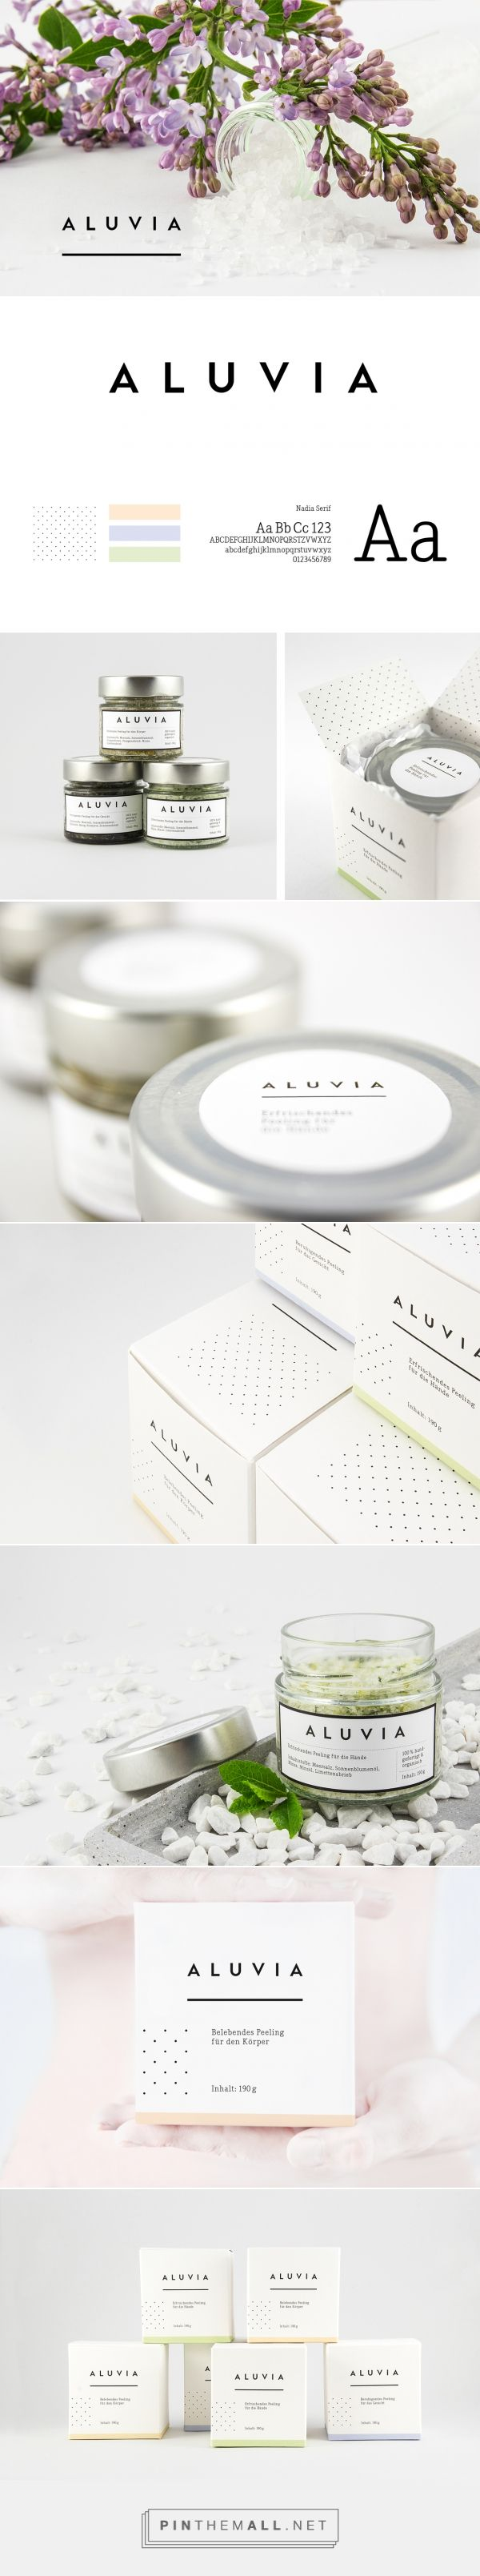 Aluvia on Behance by Christian Pannicke Berlin, Germany curated by Packaging Diva PD. A purely fictional concept for high-quality, hand-crafted, natural exfoliants for the body. Too bad it's not real packaging.